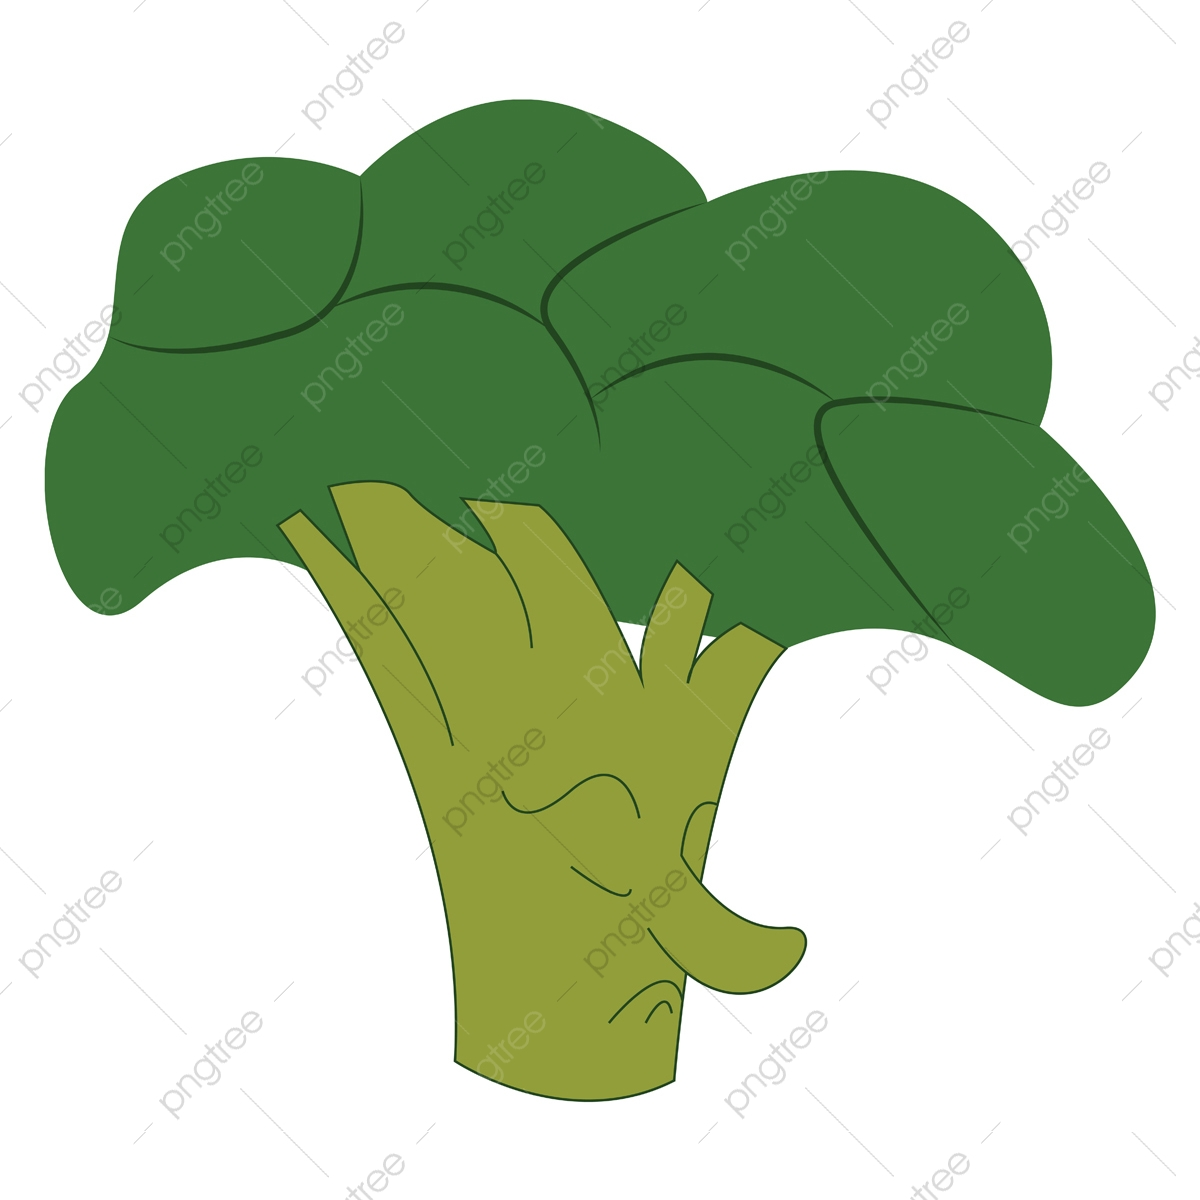 broccoli vector png vector psd and clipart with transparent background for free download pngtree https pngtree com freepng a broccoli vector color illustration 5268482 html